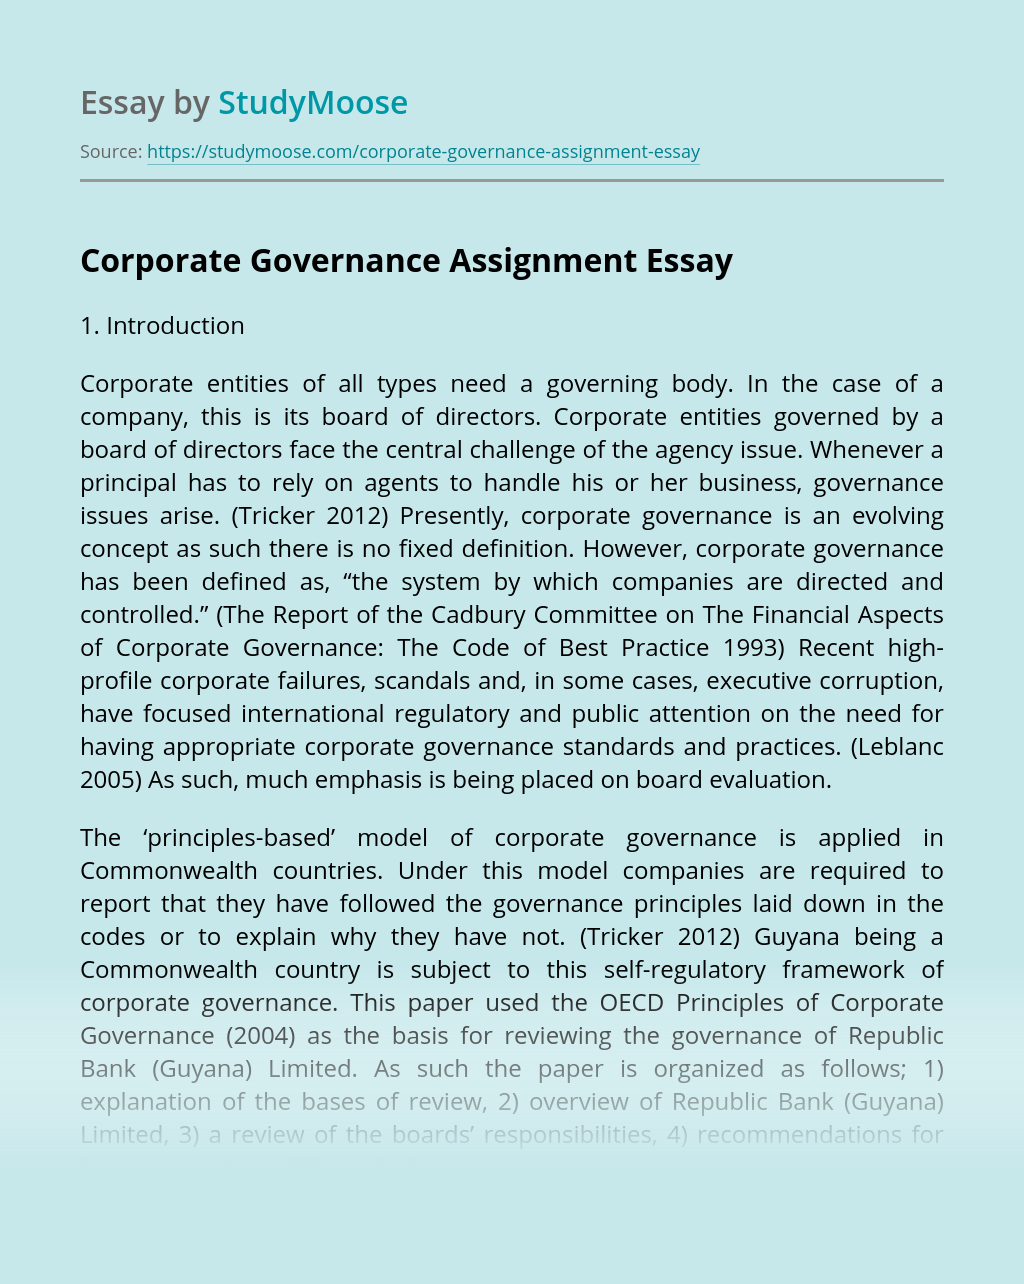 Corporate Governance Assignment